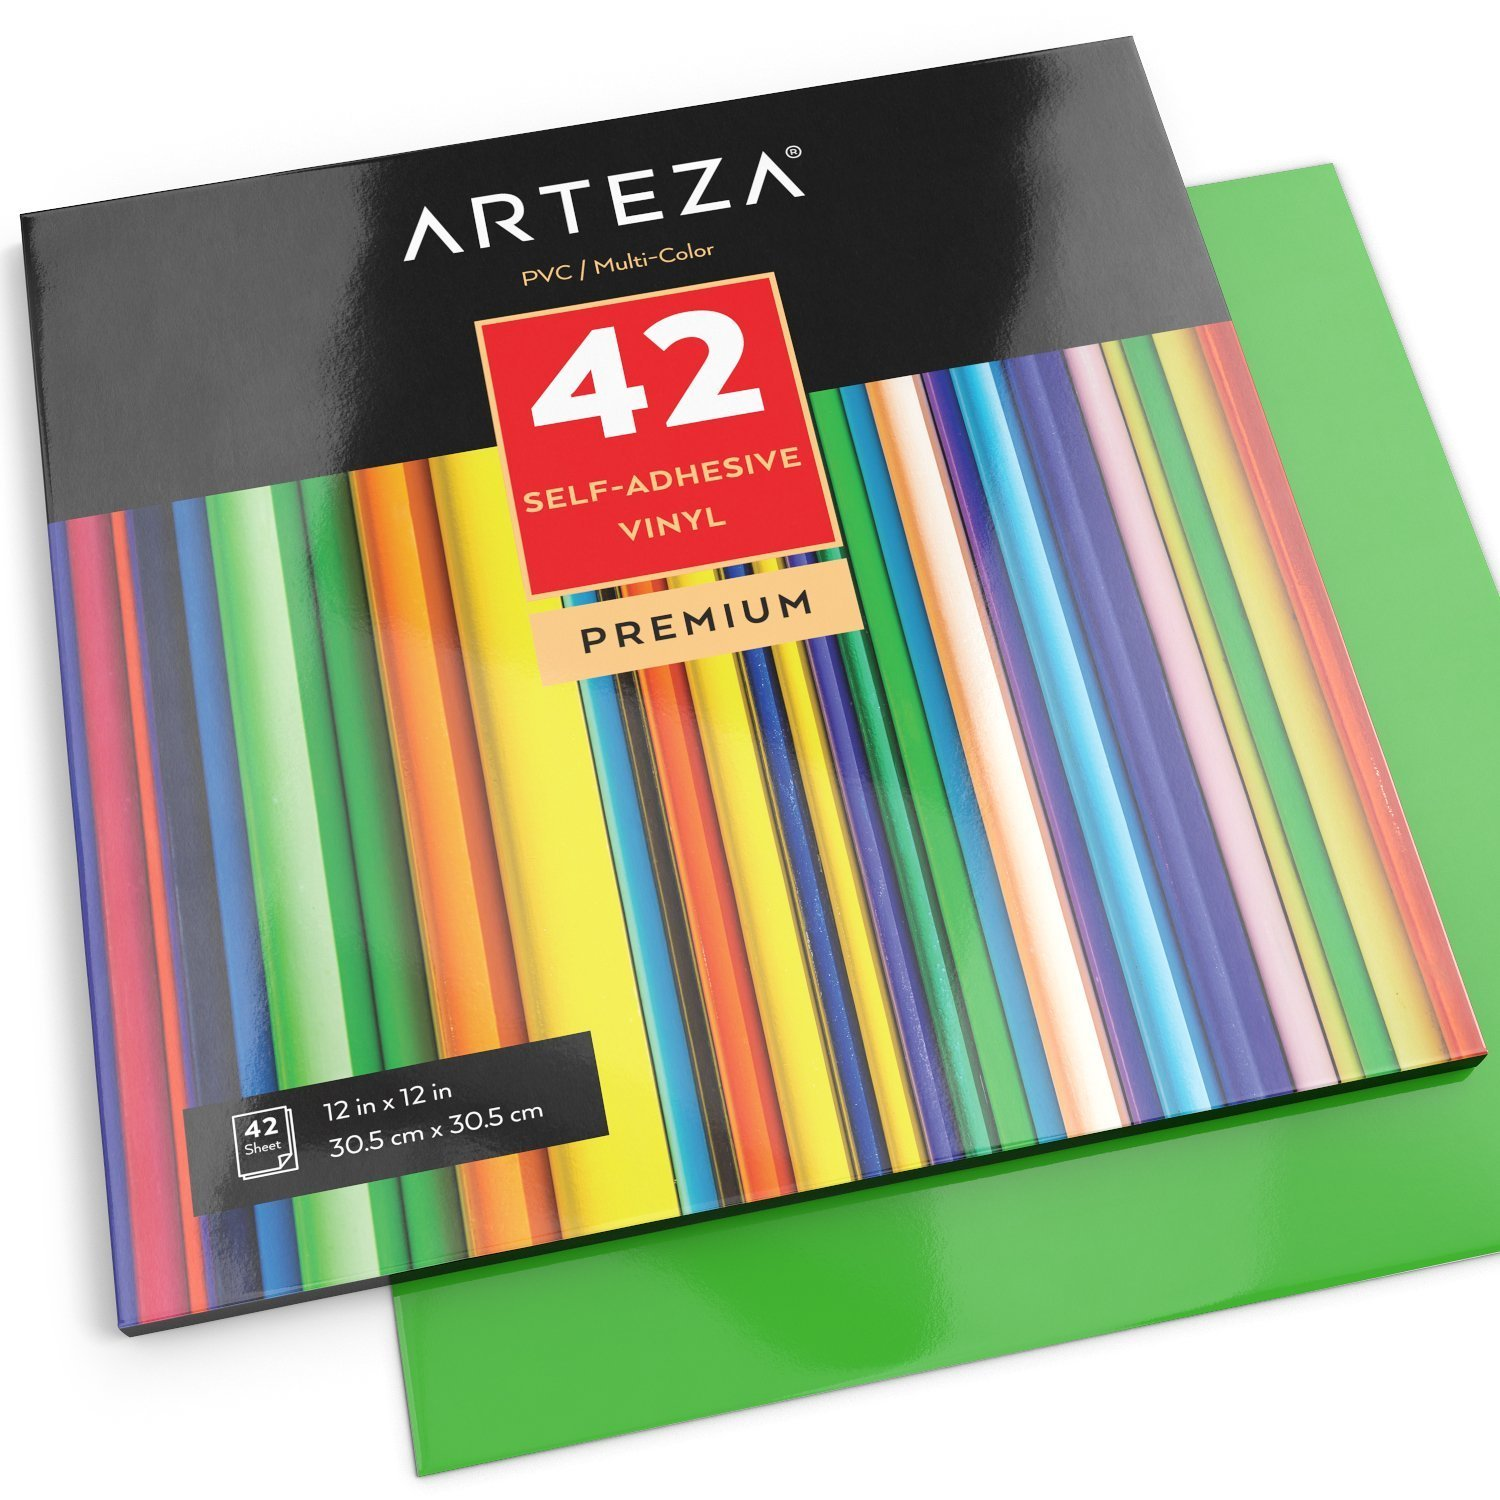 Set Of 42 Premium Multicolor 12 X 12 Self Adhesive Vinyl Sheets Weeds Easily And Can Be Used With All Craft Adhesive Vinyl Sheets Adhesive Vinyl Vinyl Sheets